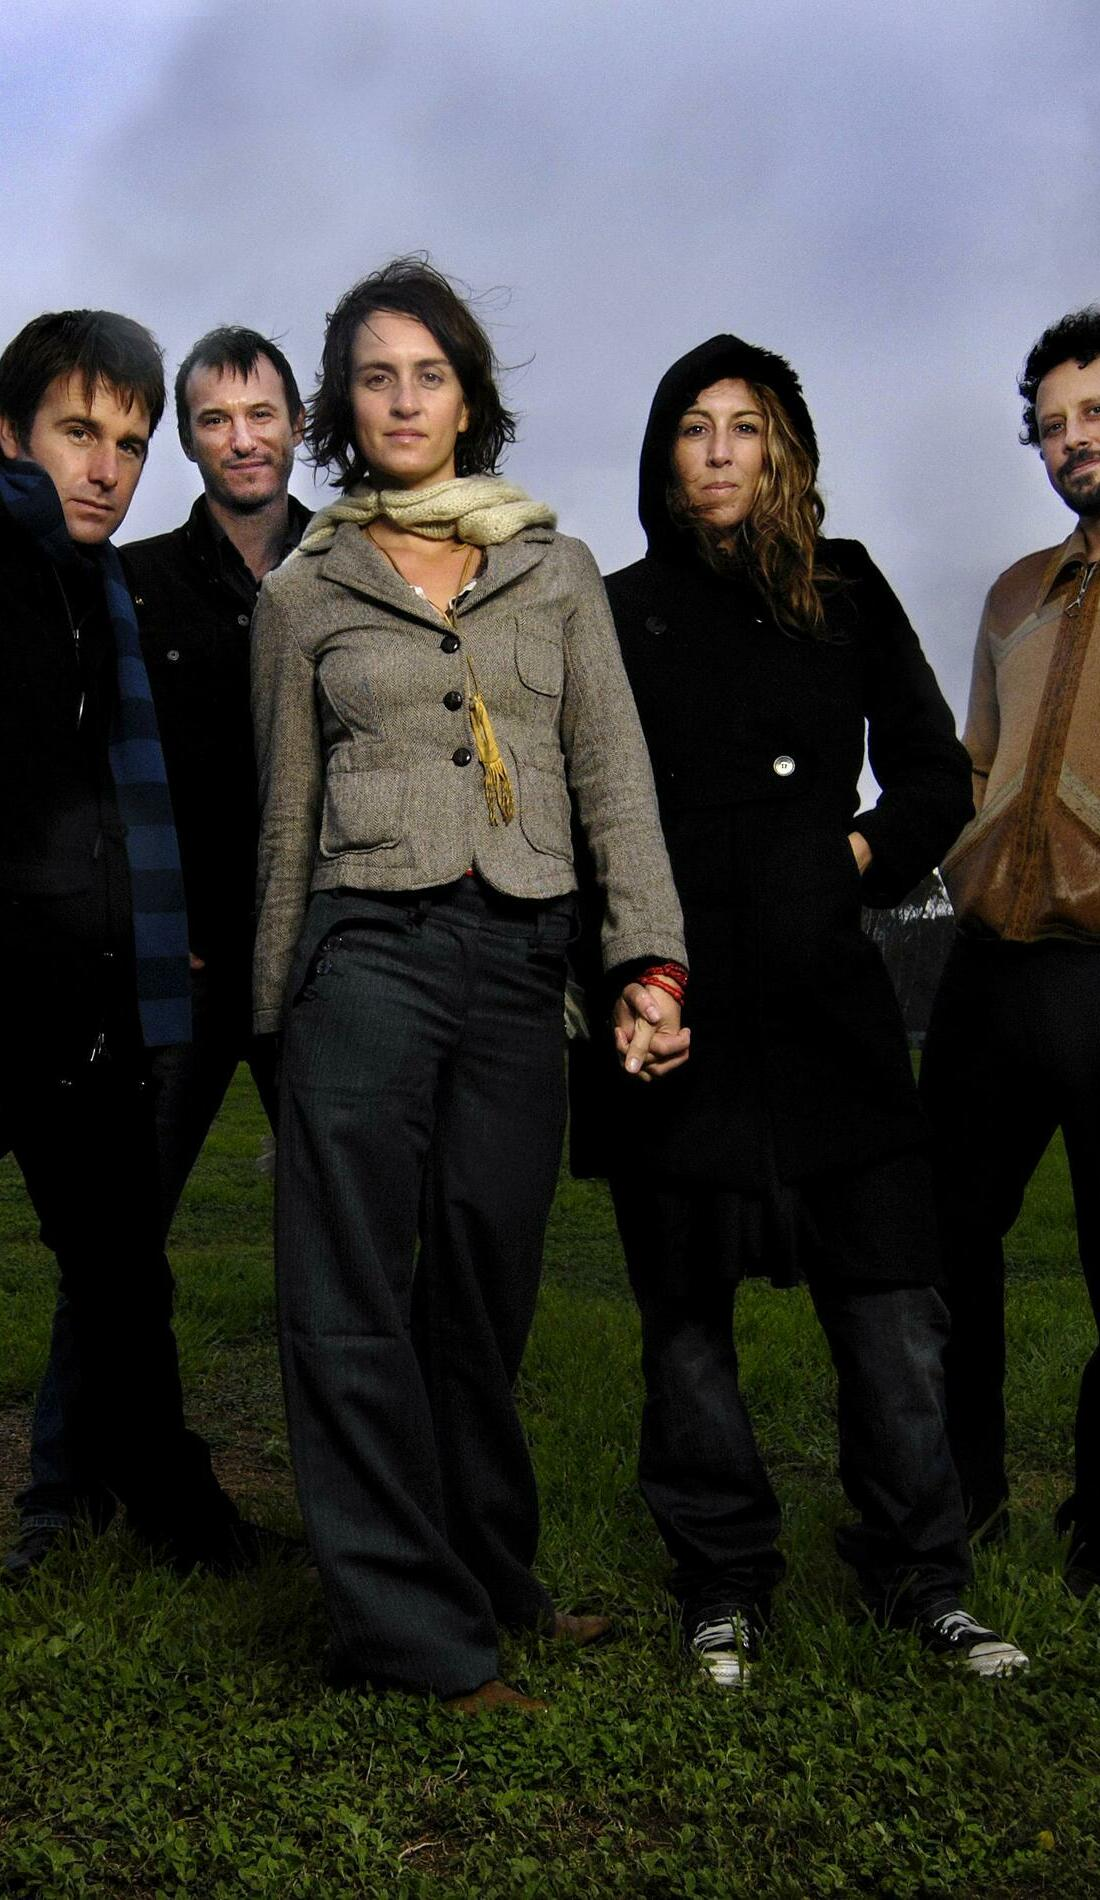 A The Waifs live event